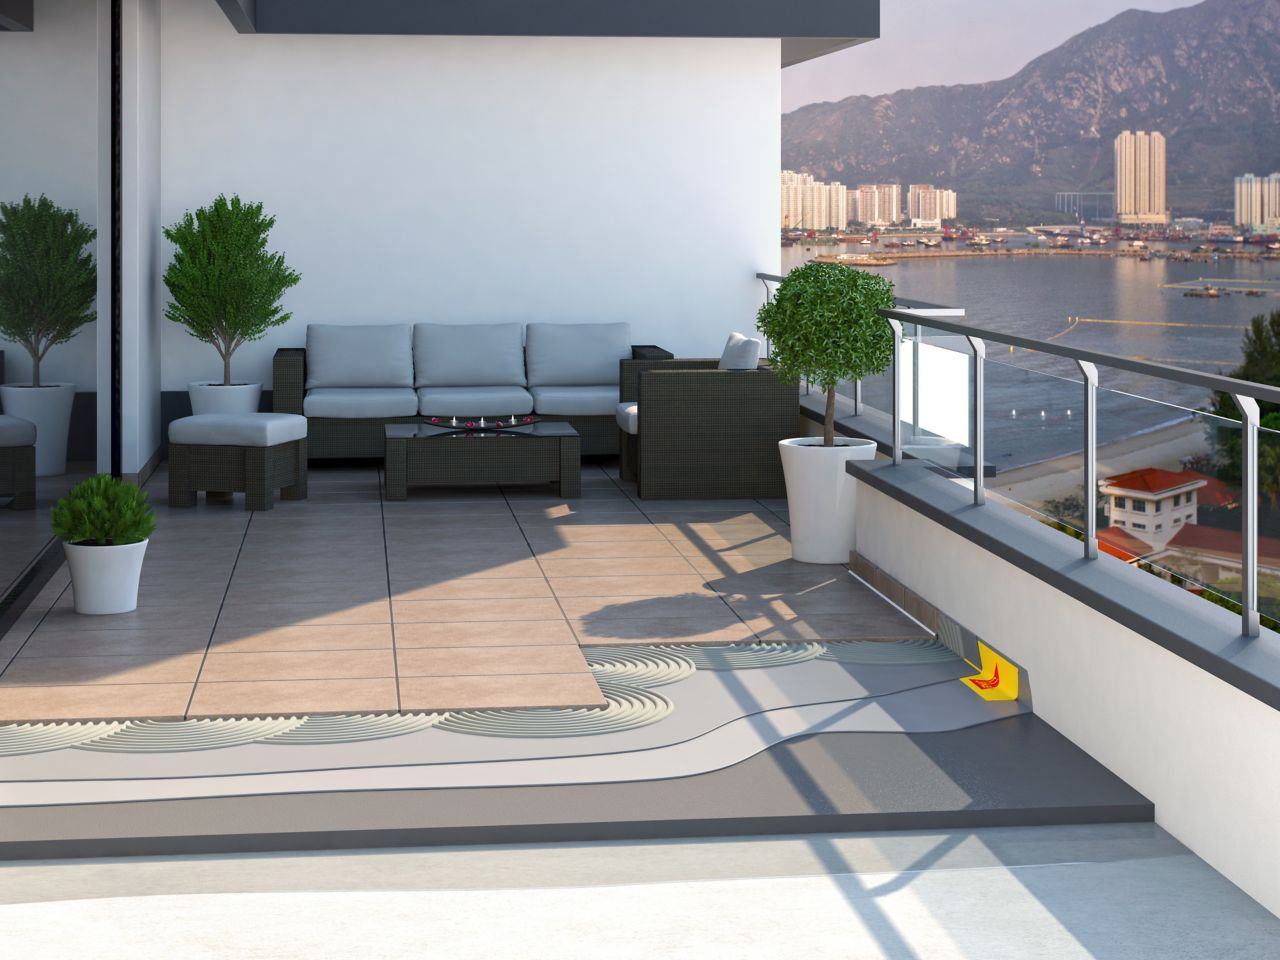 Illustration of tile setting adhesives and waterproofing tape on balcony with furniture overlooking harbor bay city view